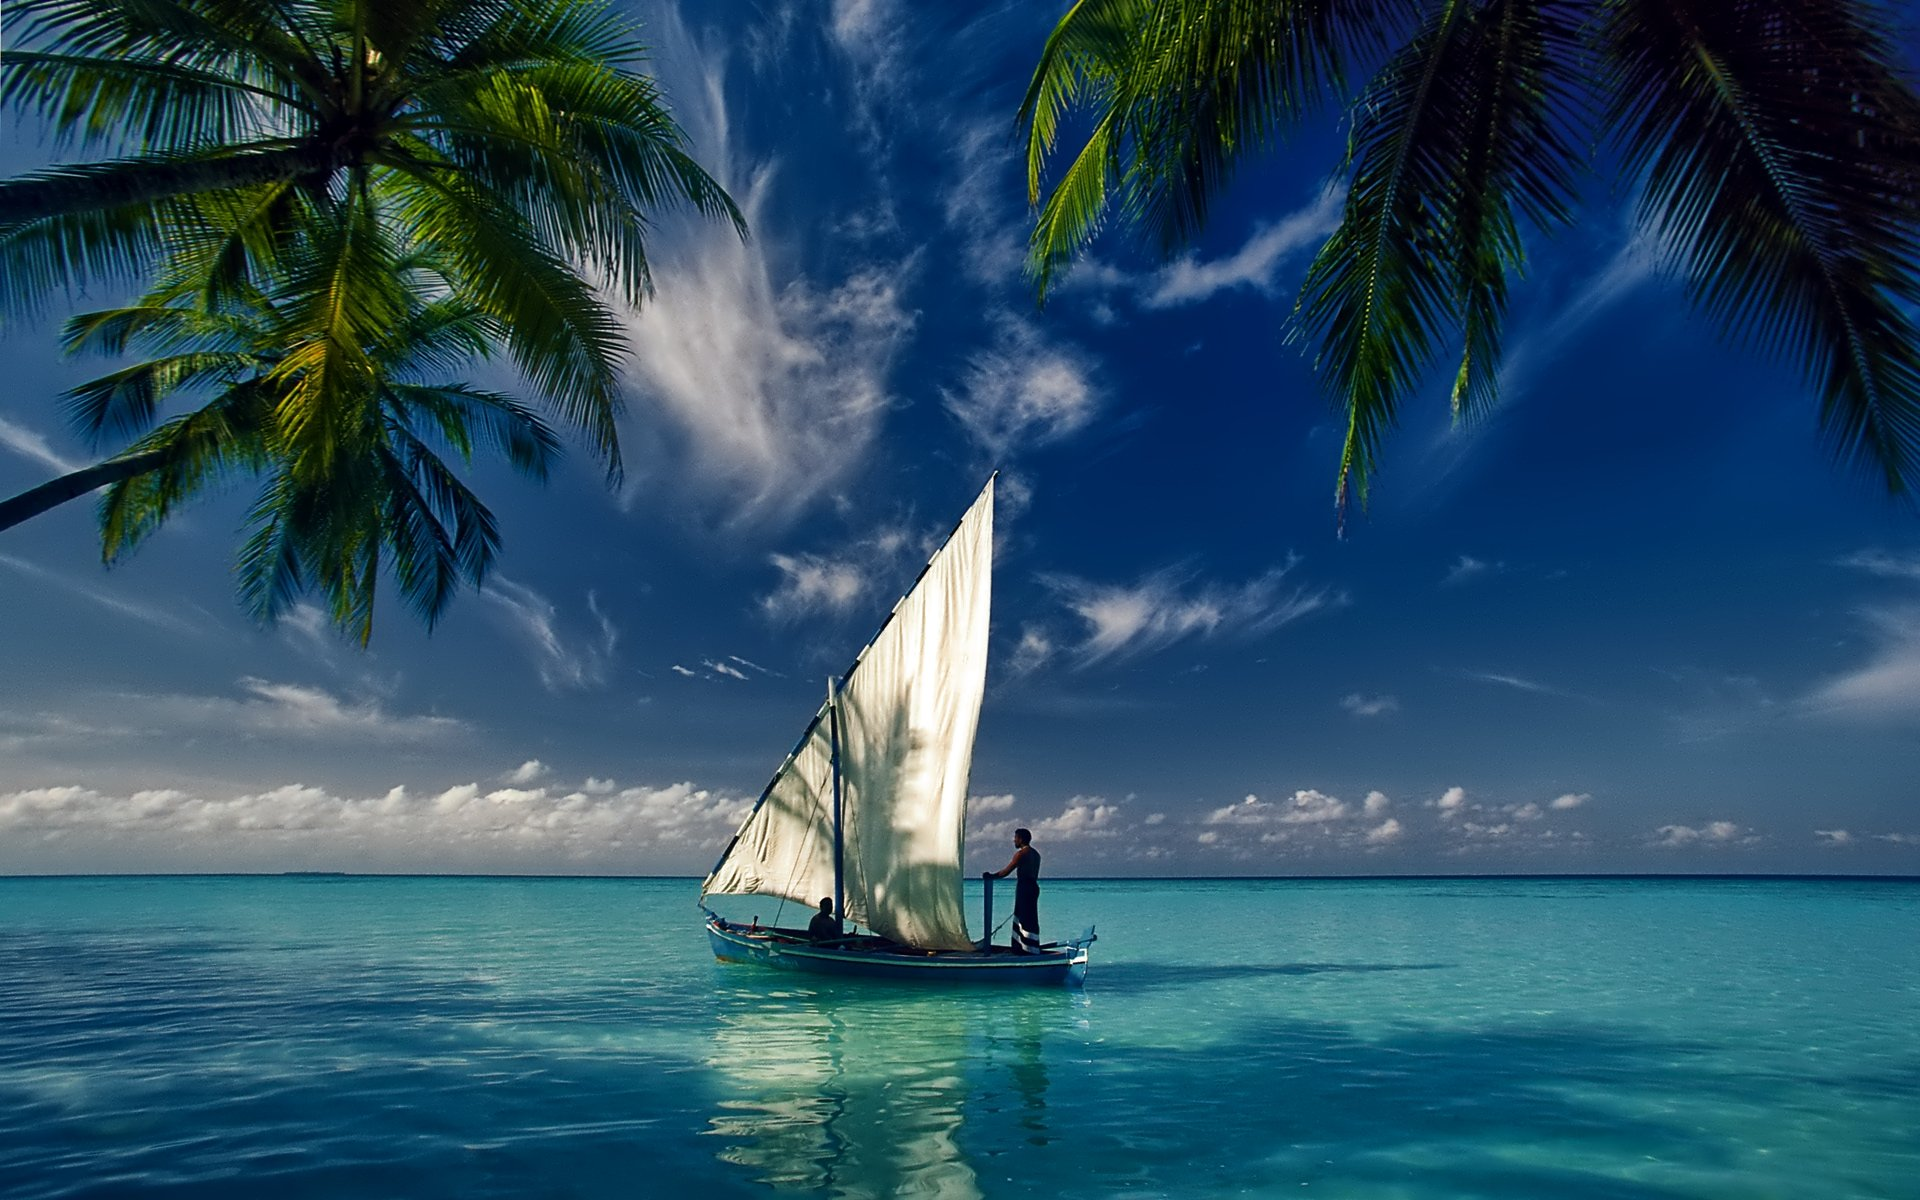 hungry for sailboat wallpaper - photo #21